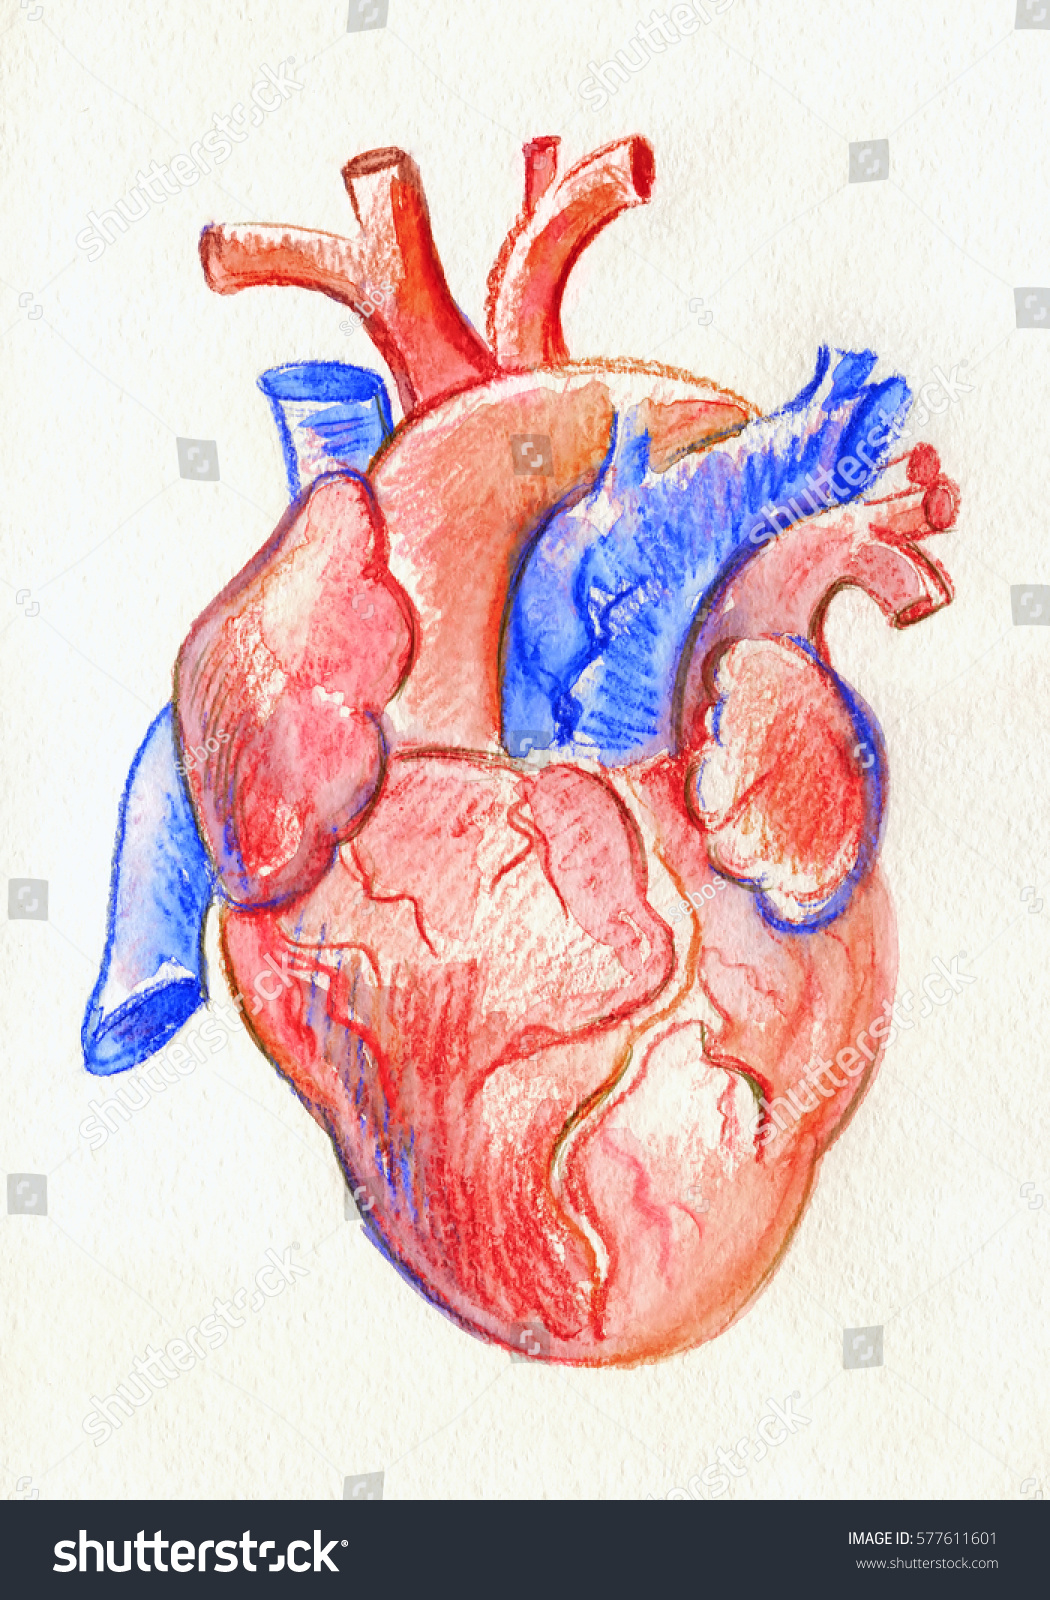 Hand Drawing Sketch Anatomical Heart Colored Stock Illustration ...